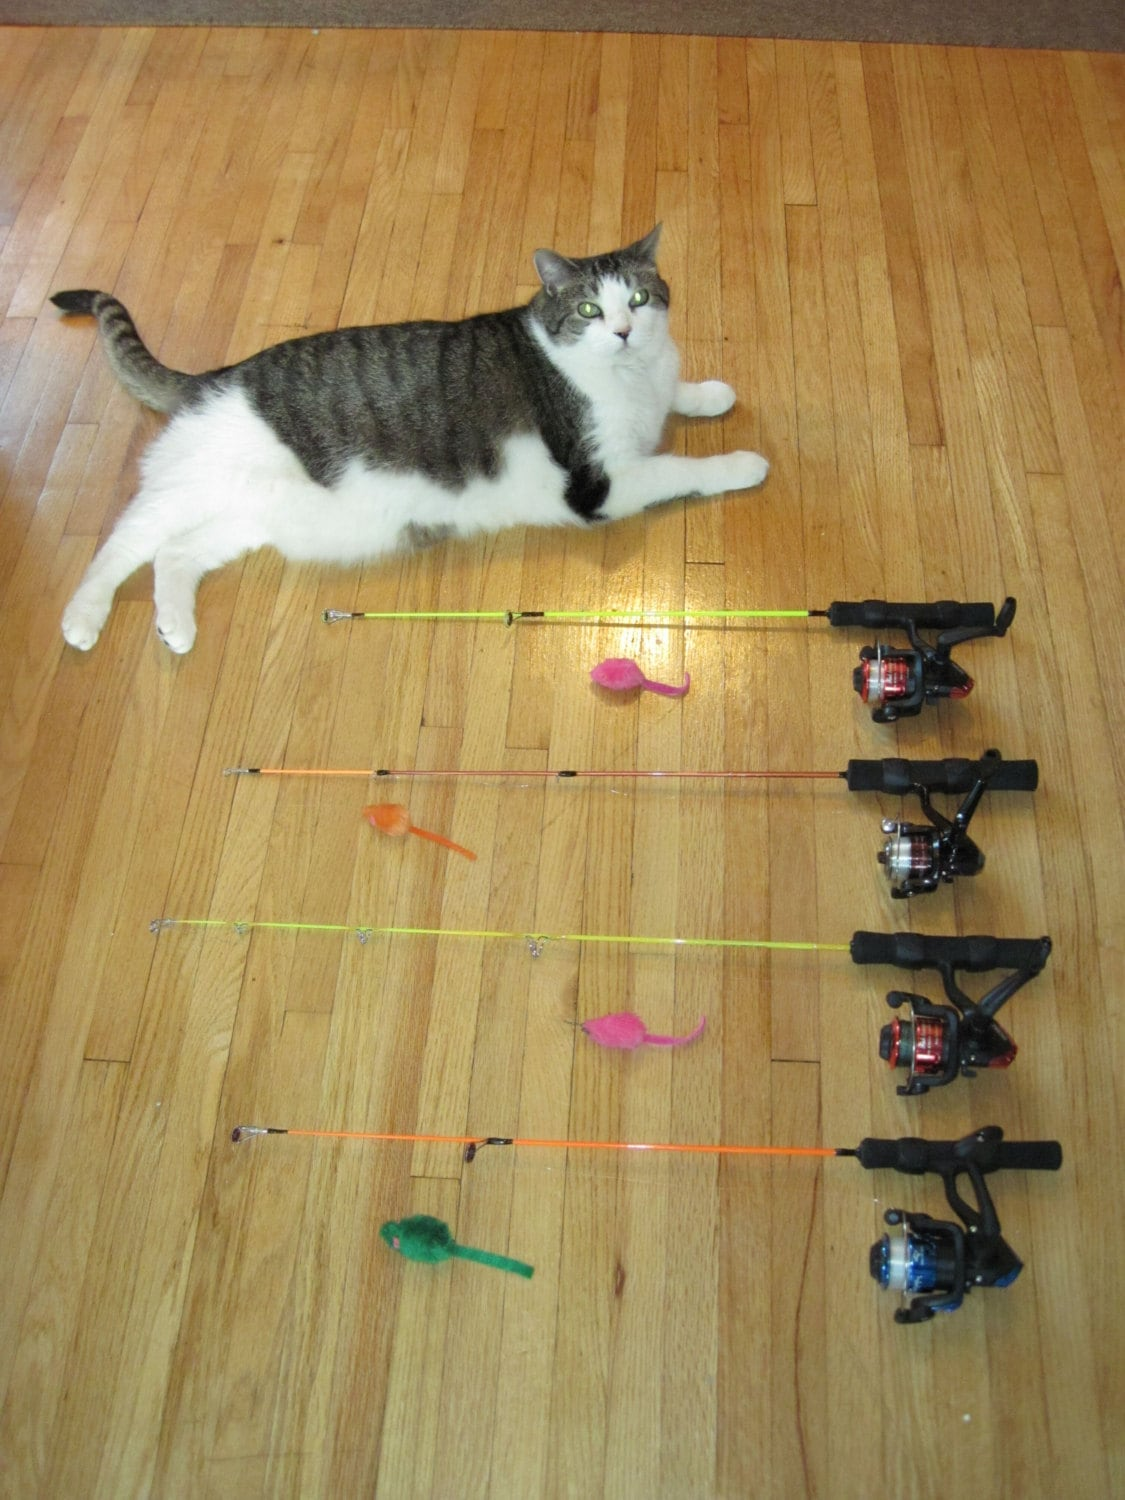 Cat toy fishing pole the most fun interactive cat toy ever for Cat toy fishing pole